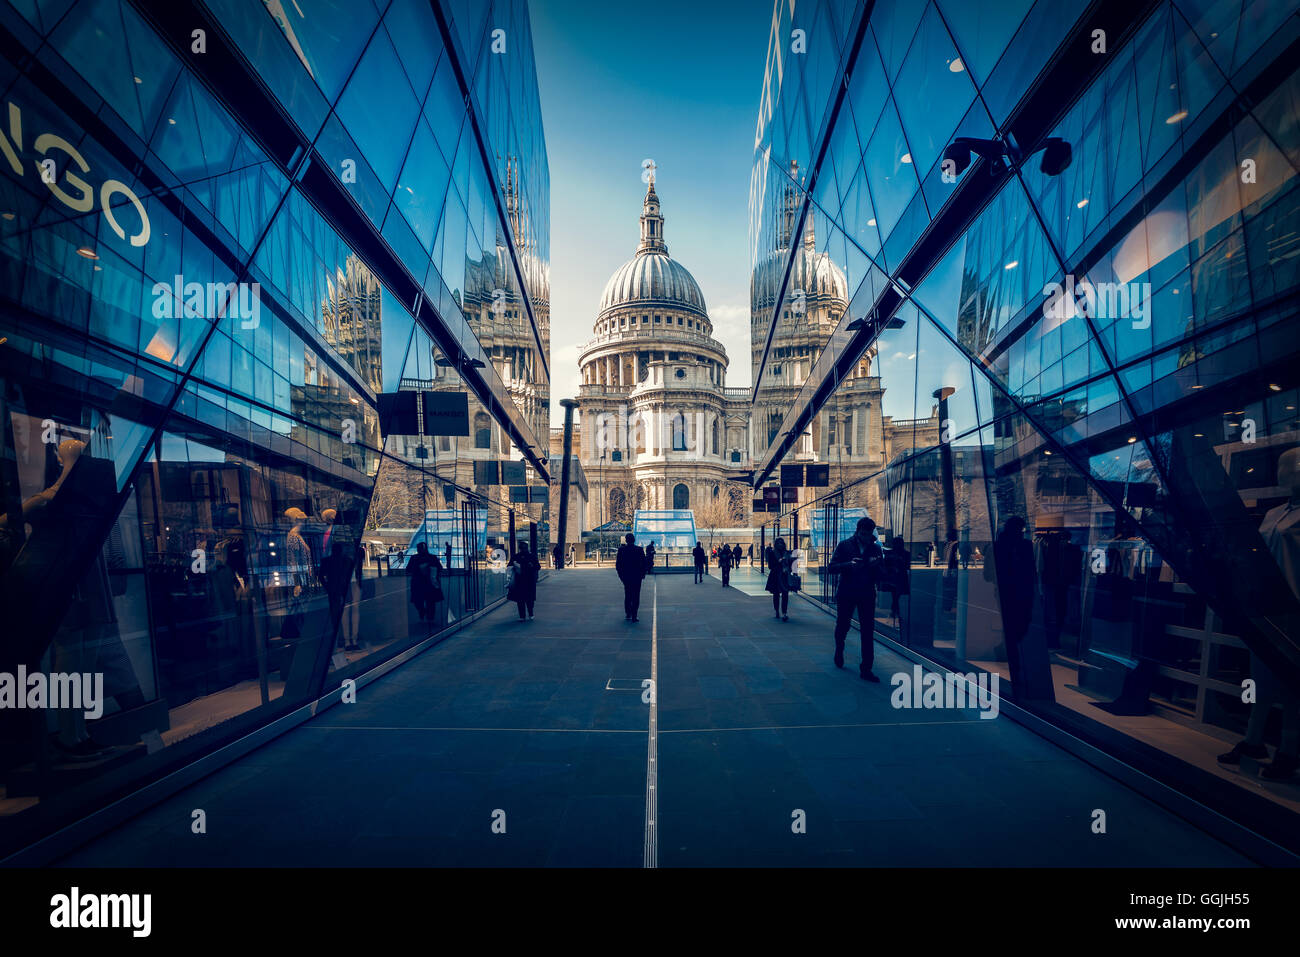 St Paul's Cathedral seen from One New Change, London, United Kingdom - Stock Image